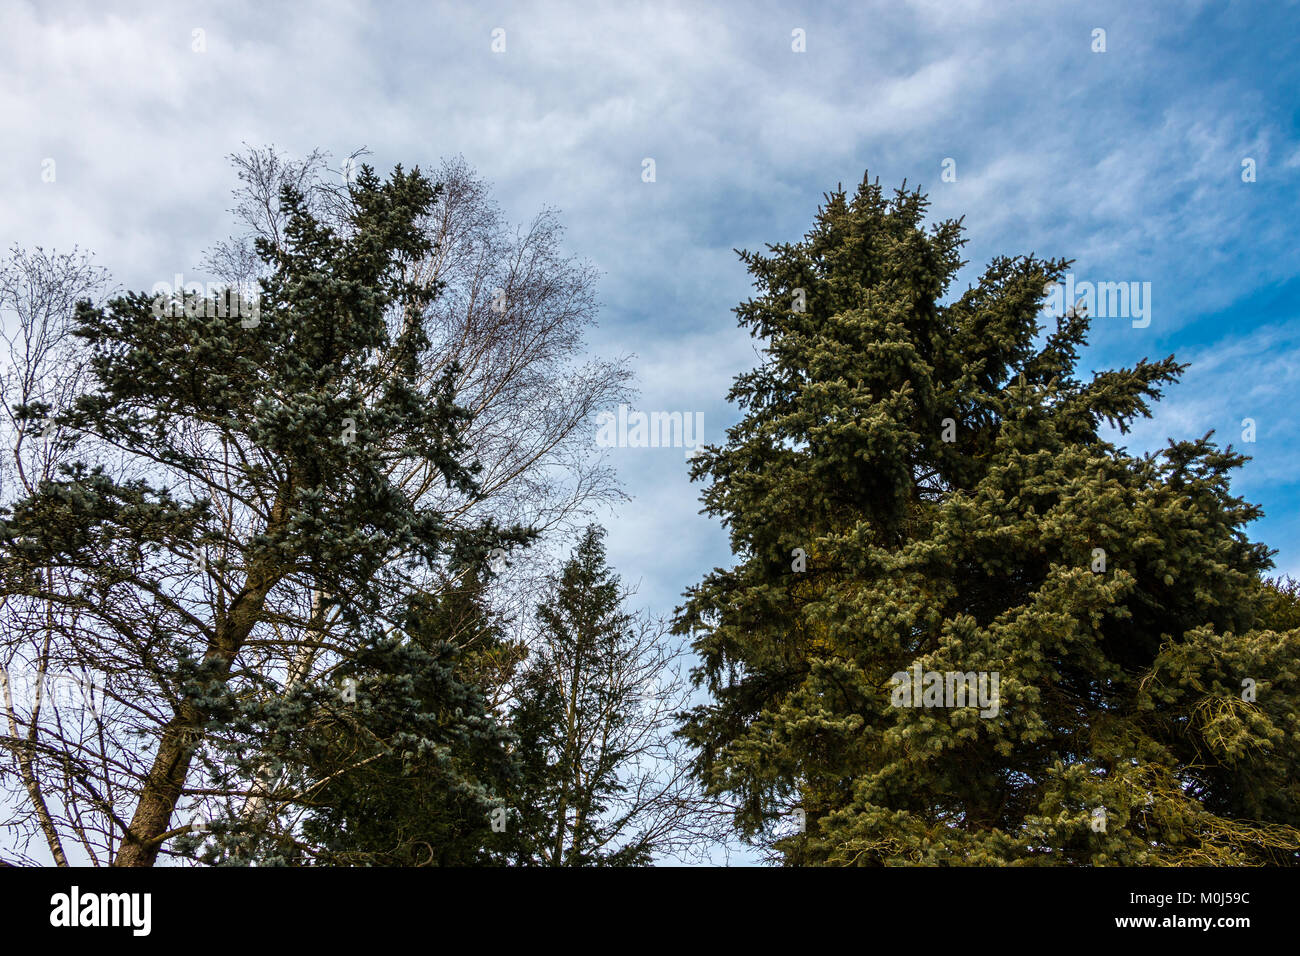 Big firs near the forest - Stock Image